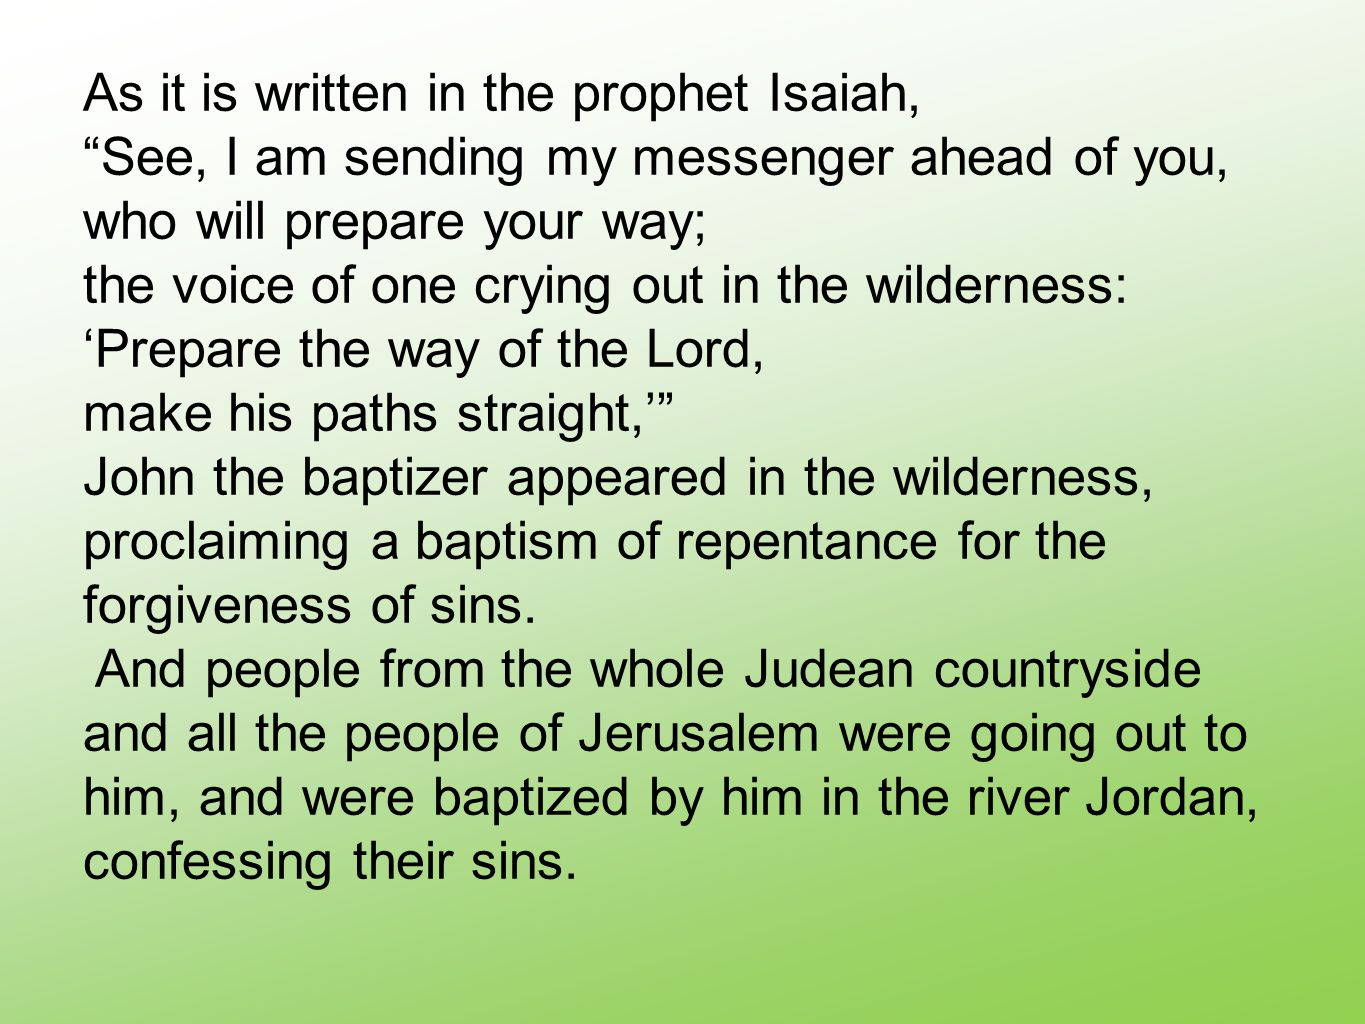 As it is written in the prophet Isaiah, See, I am sending my messenger ahead of you, who will prepare your way; the voice of one crying out in the wilderness: 'Prepare the way of the Lord, make his paths straight,' John the baptizer appeared in the wilderness, proclaiming a baptism of repentance for the forgiveness of sins.